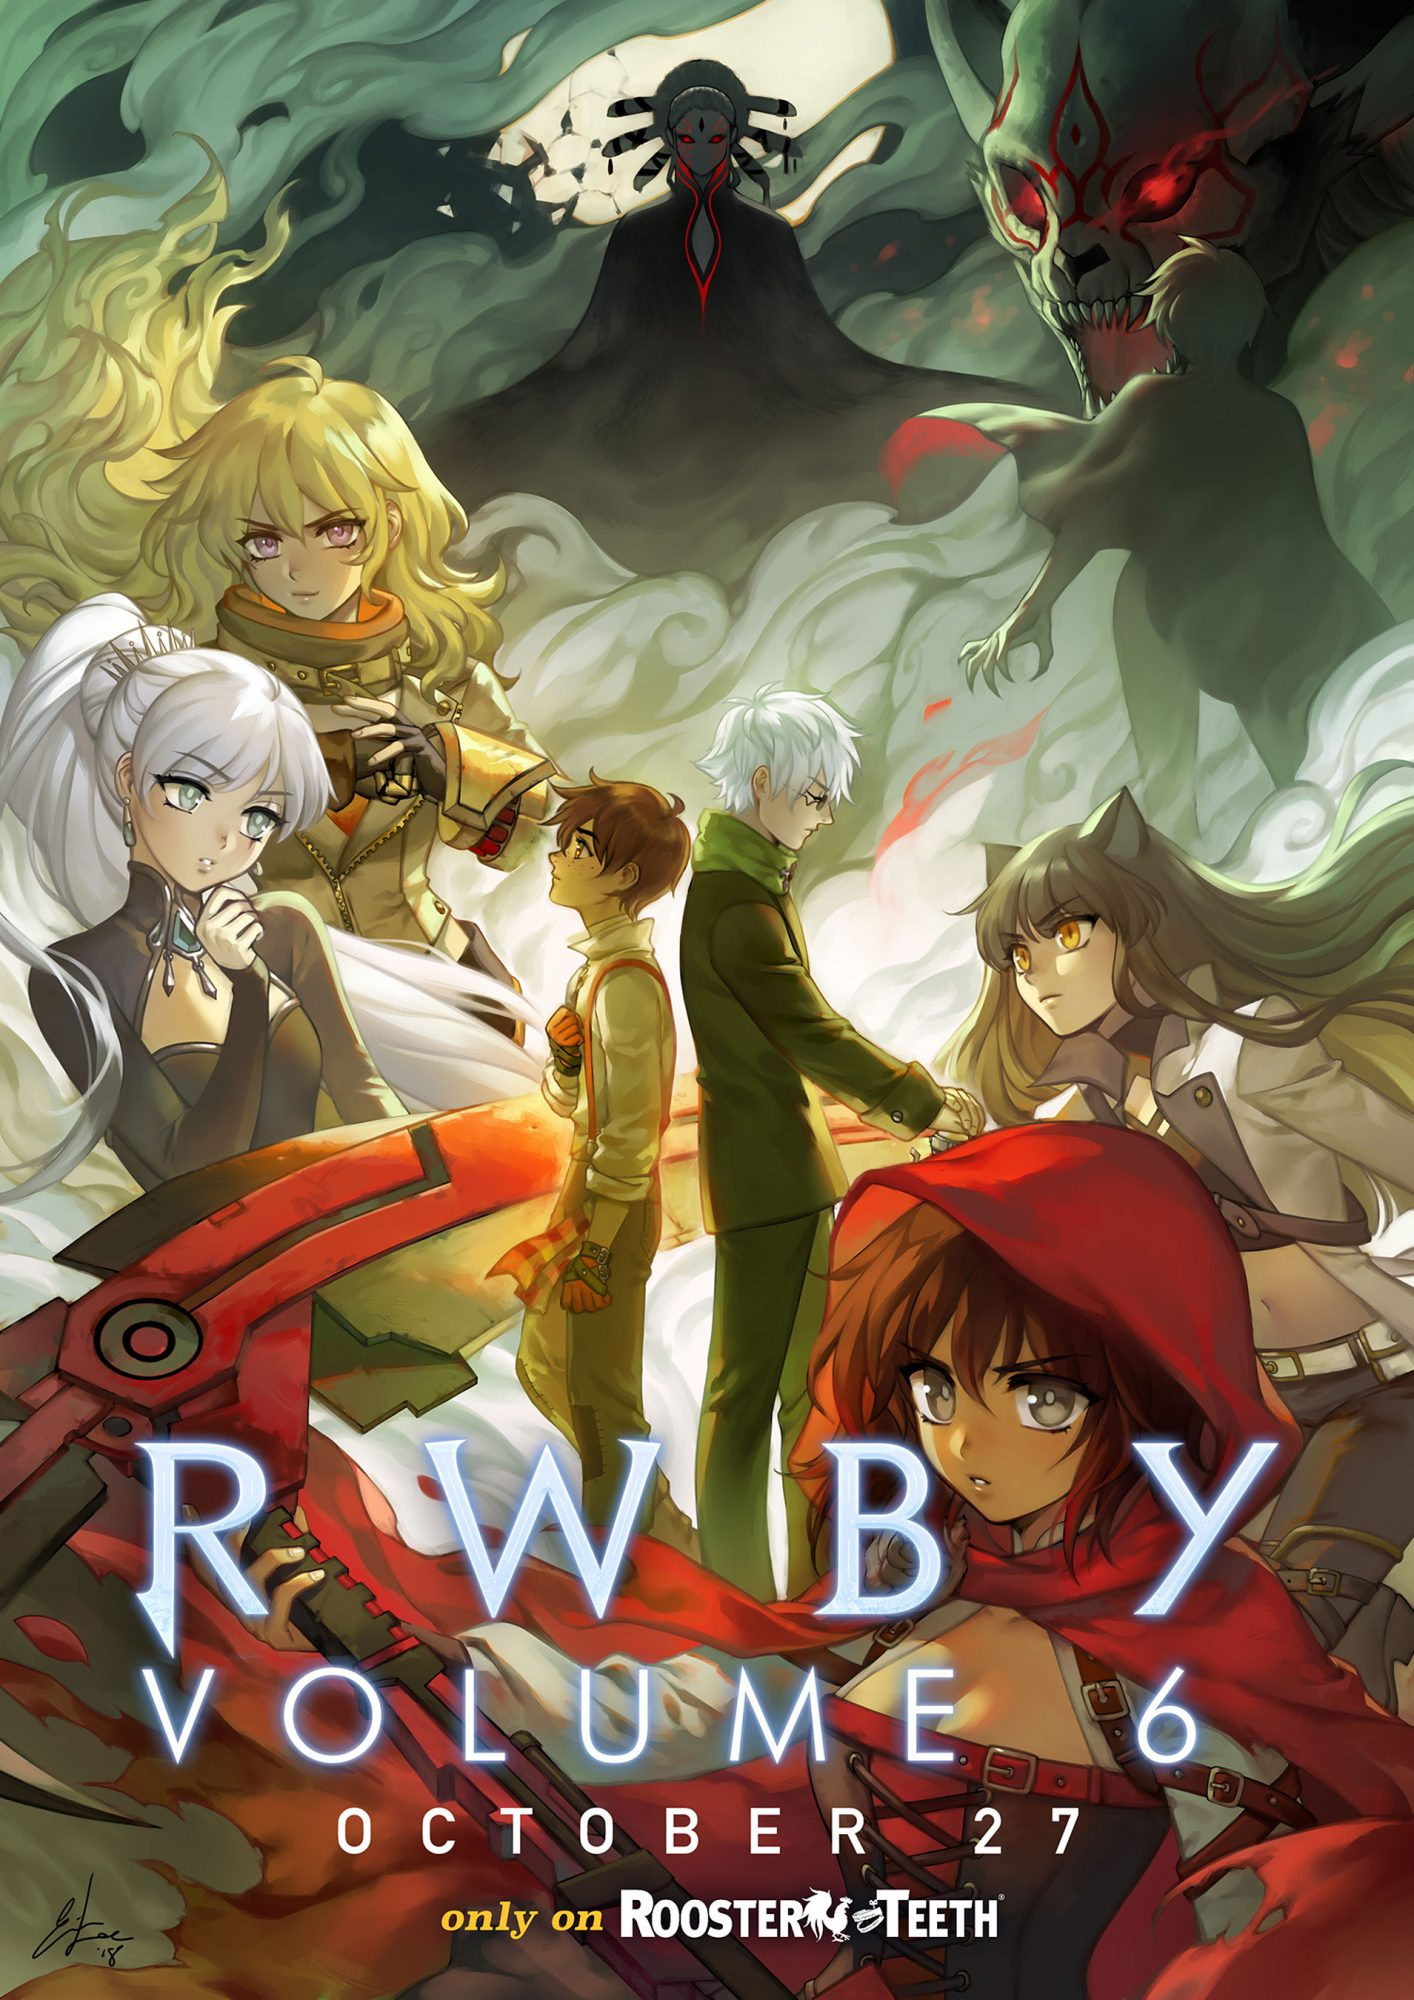 'RWBY': Exclusive first look at Vol. 6 posterCredit: Rooster Teeth